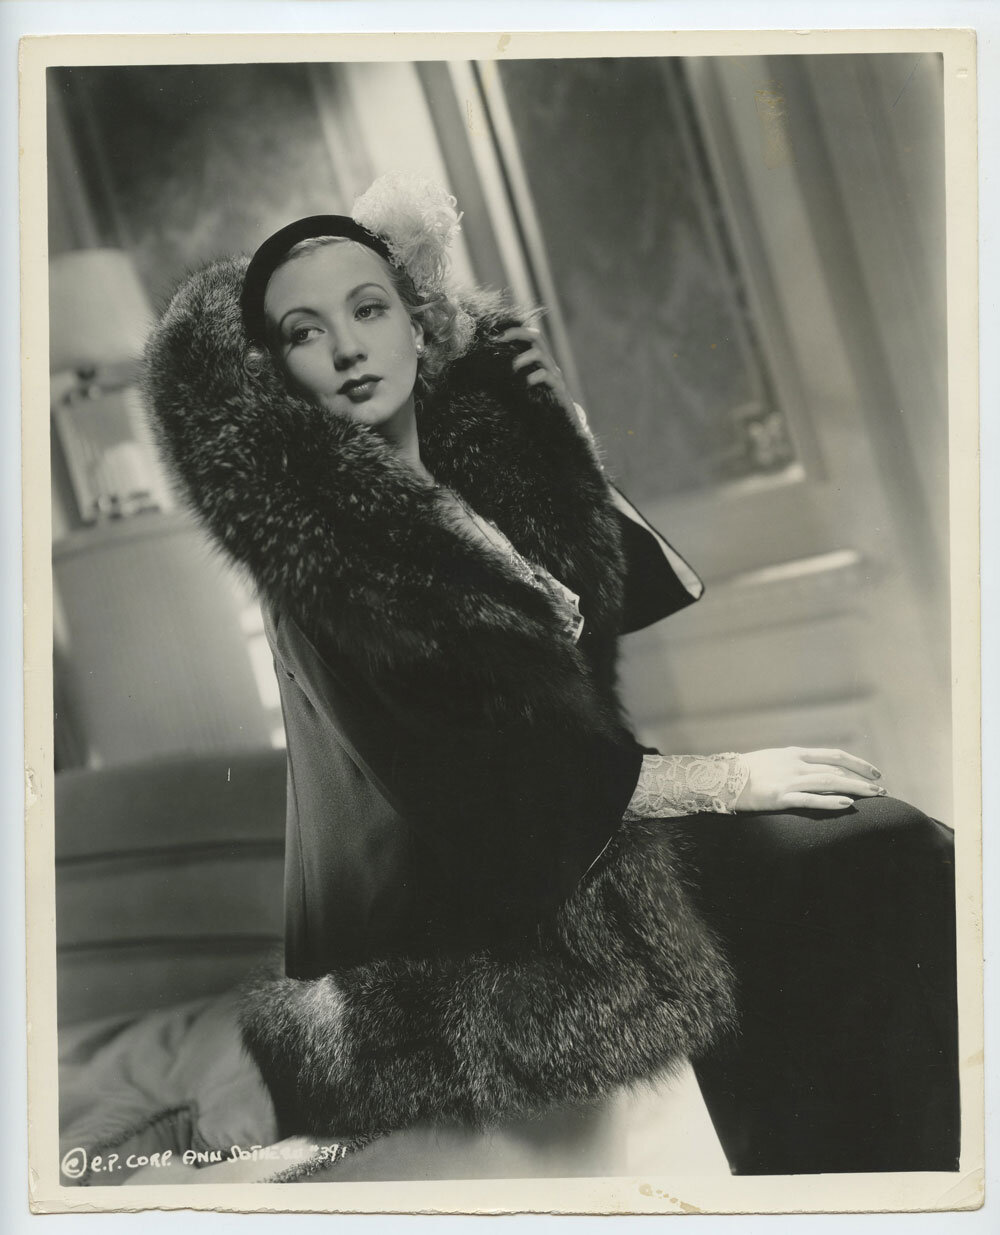 Ann Sothern Photo 1935 Columbia Pictures Publicity Portrait